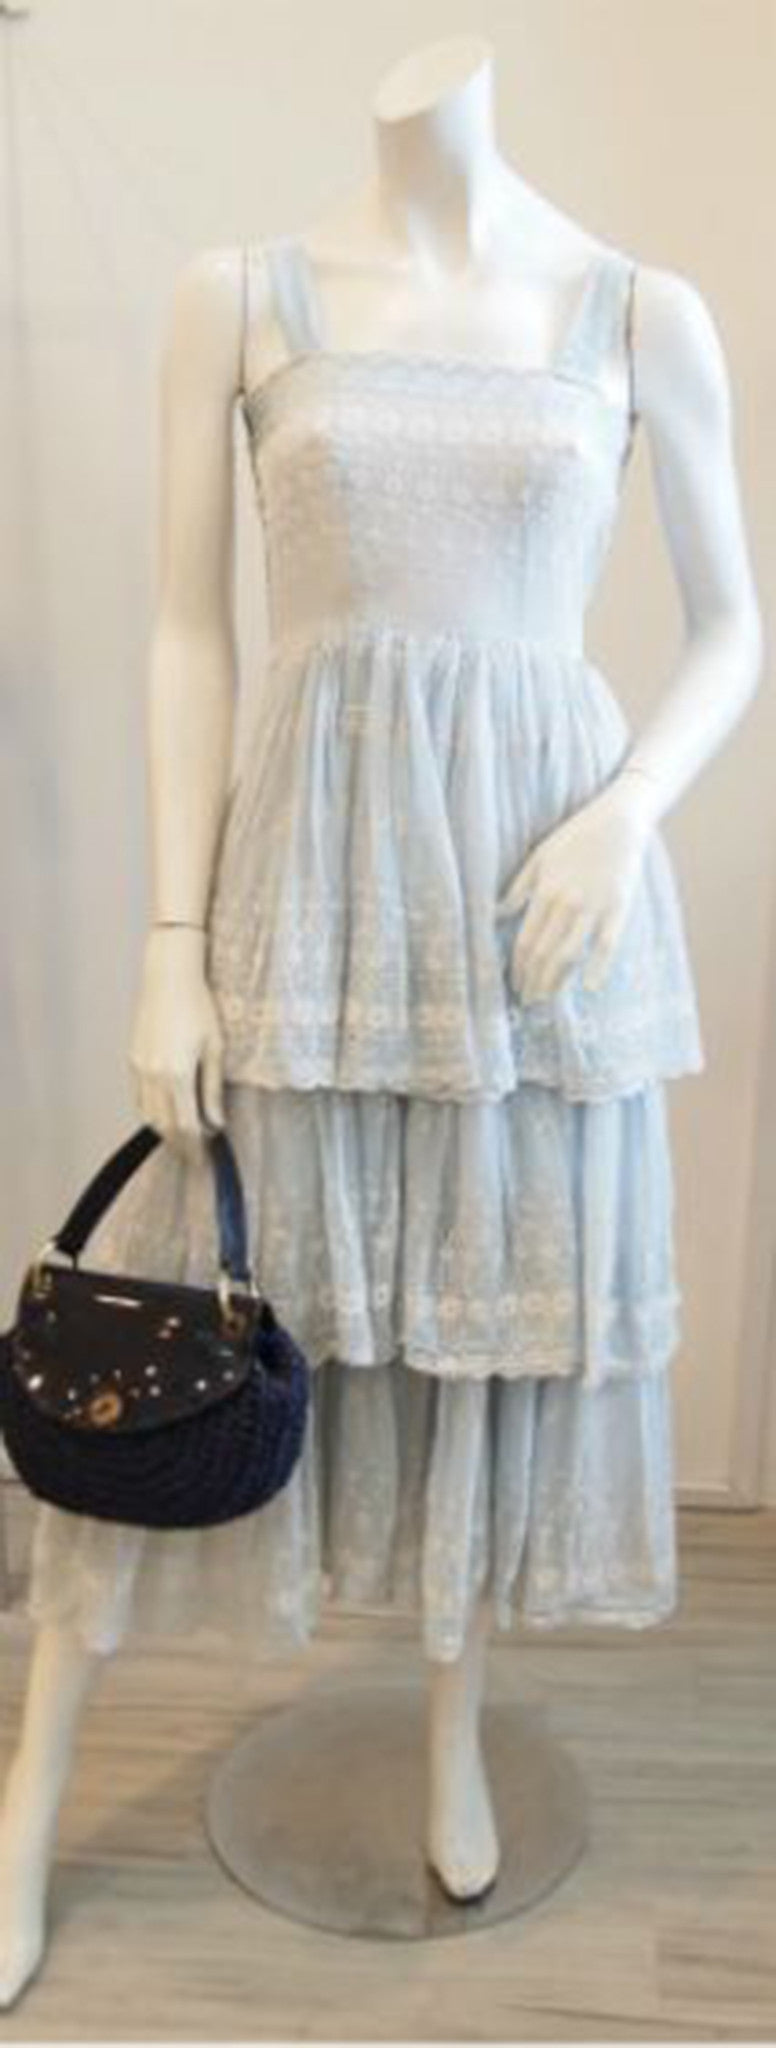 The Sky is Blue Broderie Anglaise Lace Dress